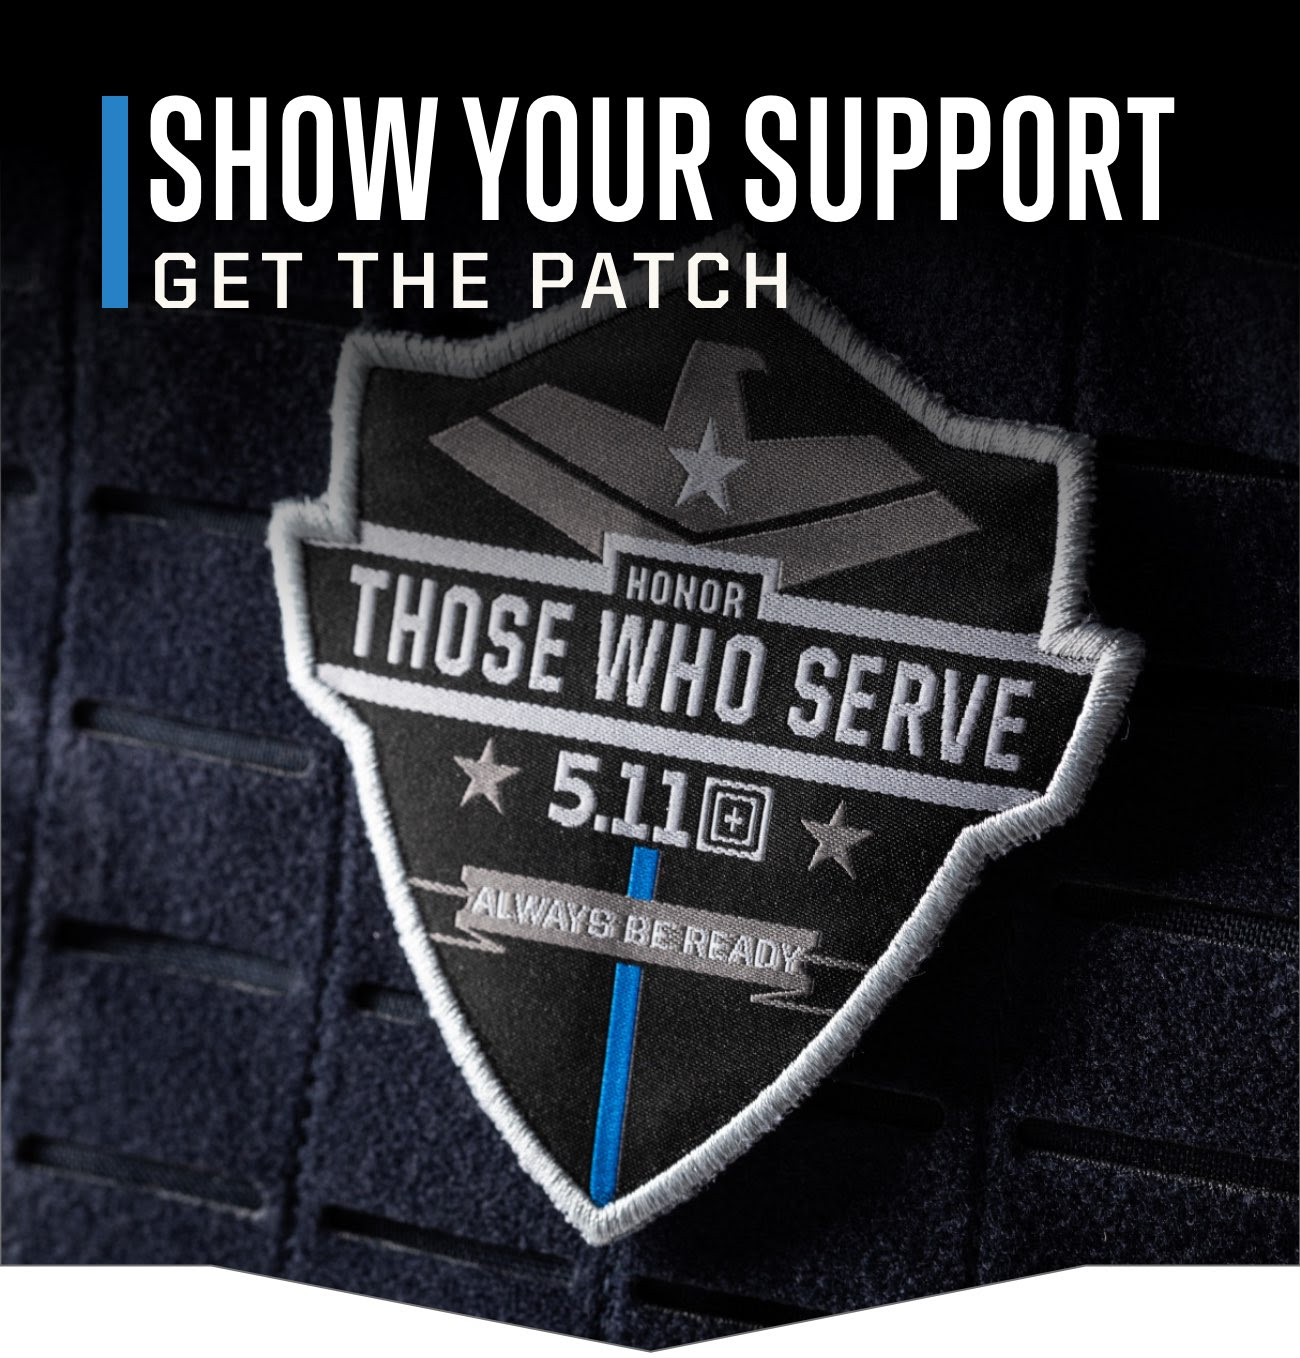 Buy a patch and give back to L...